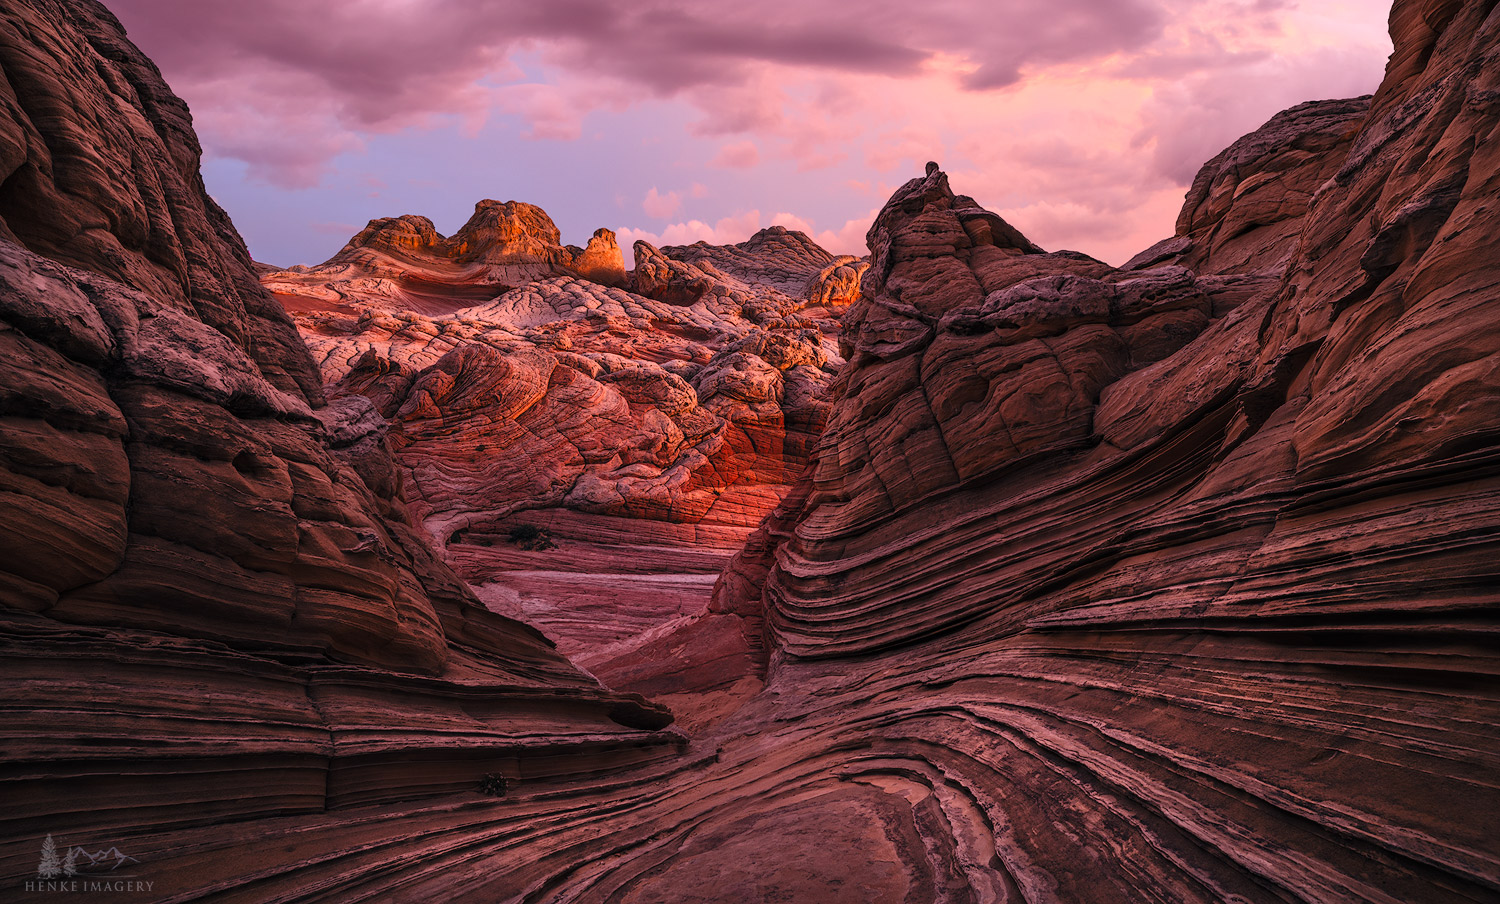 Vermilion Cliffs National Monument, otherworldly, monument, thunderstorm, clouds, fantastic, light, geology, photo